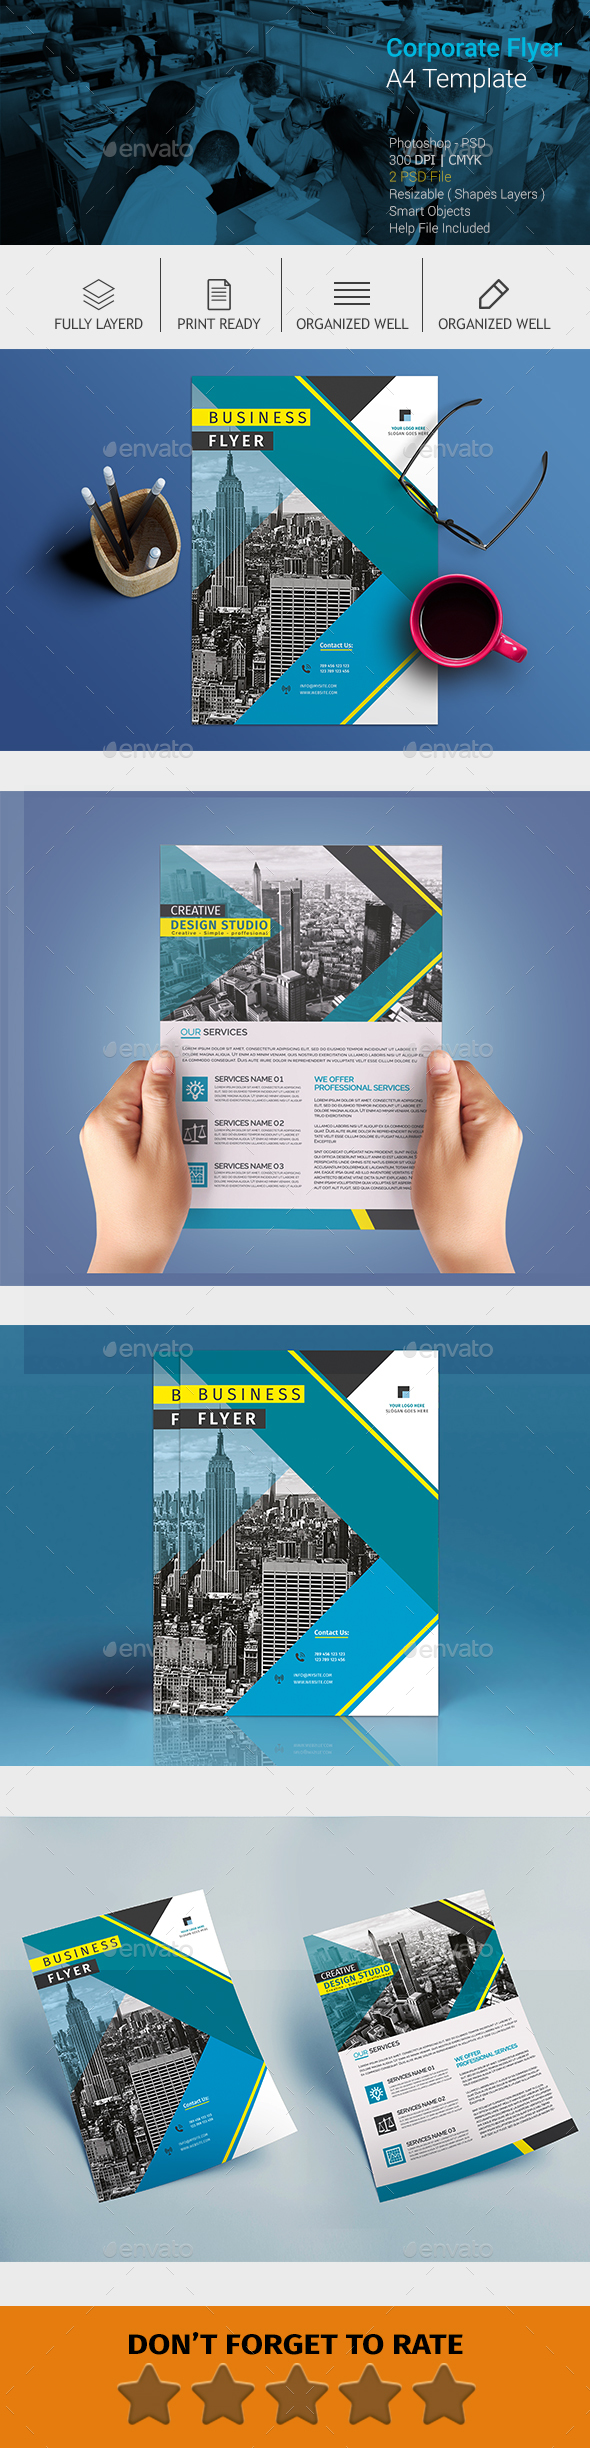 GraphicRiver A4 Corporate Business flyer #9 20579337